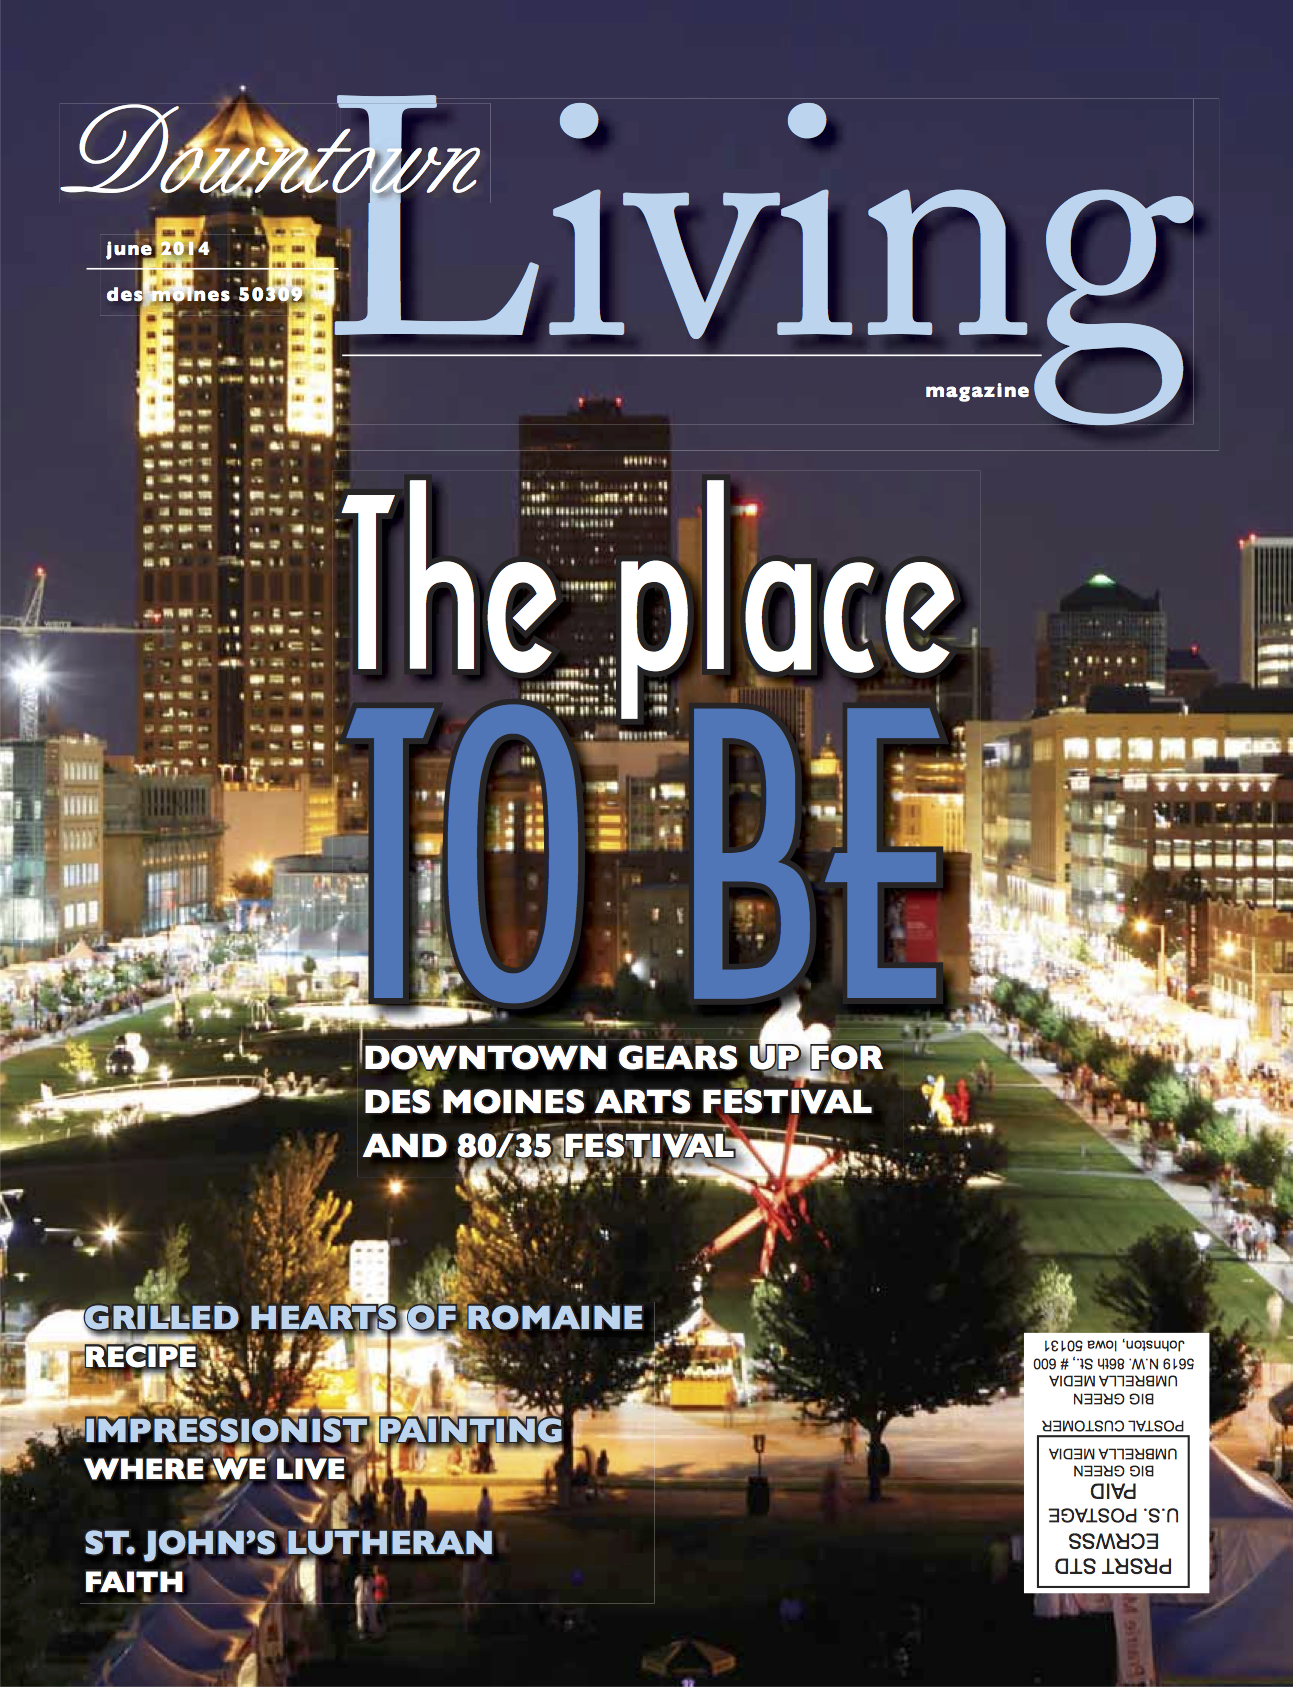 Downtown-June2014-COVER